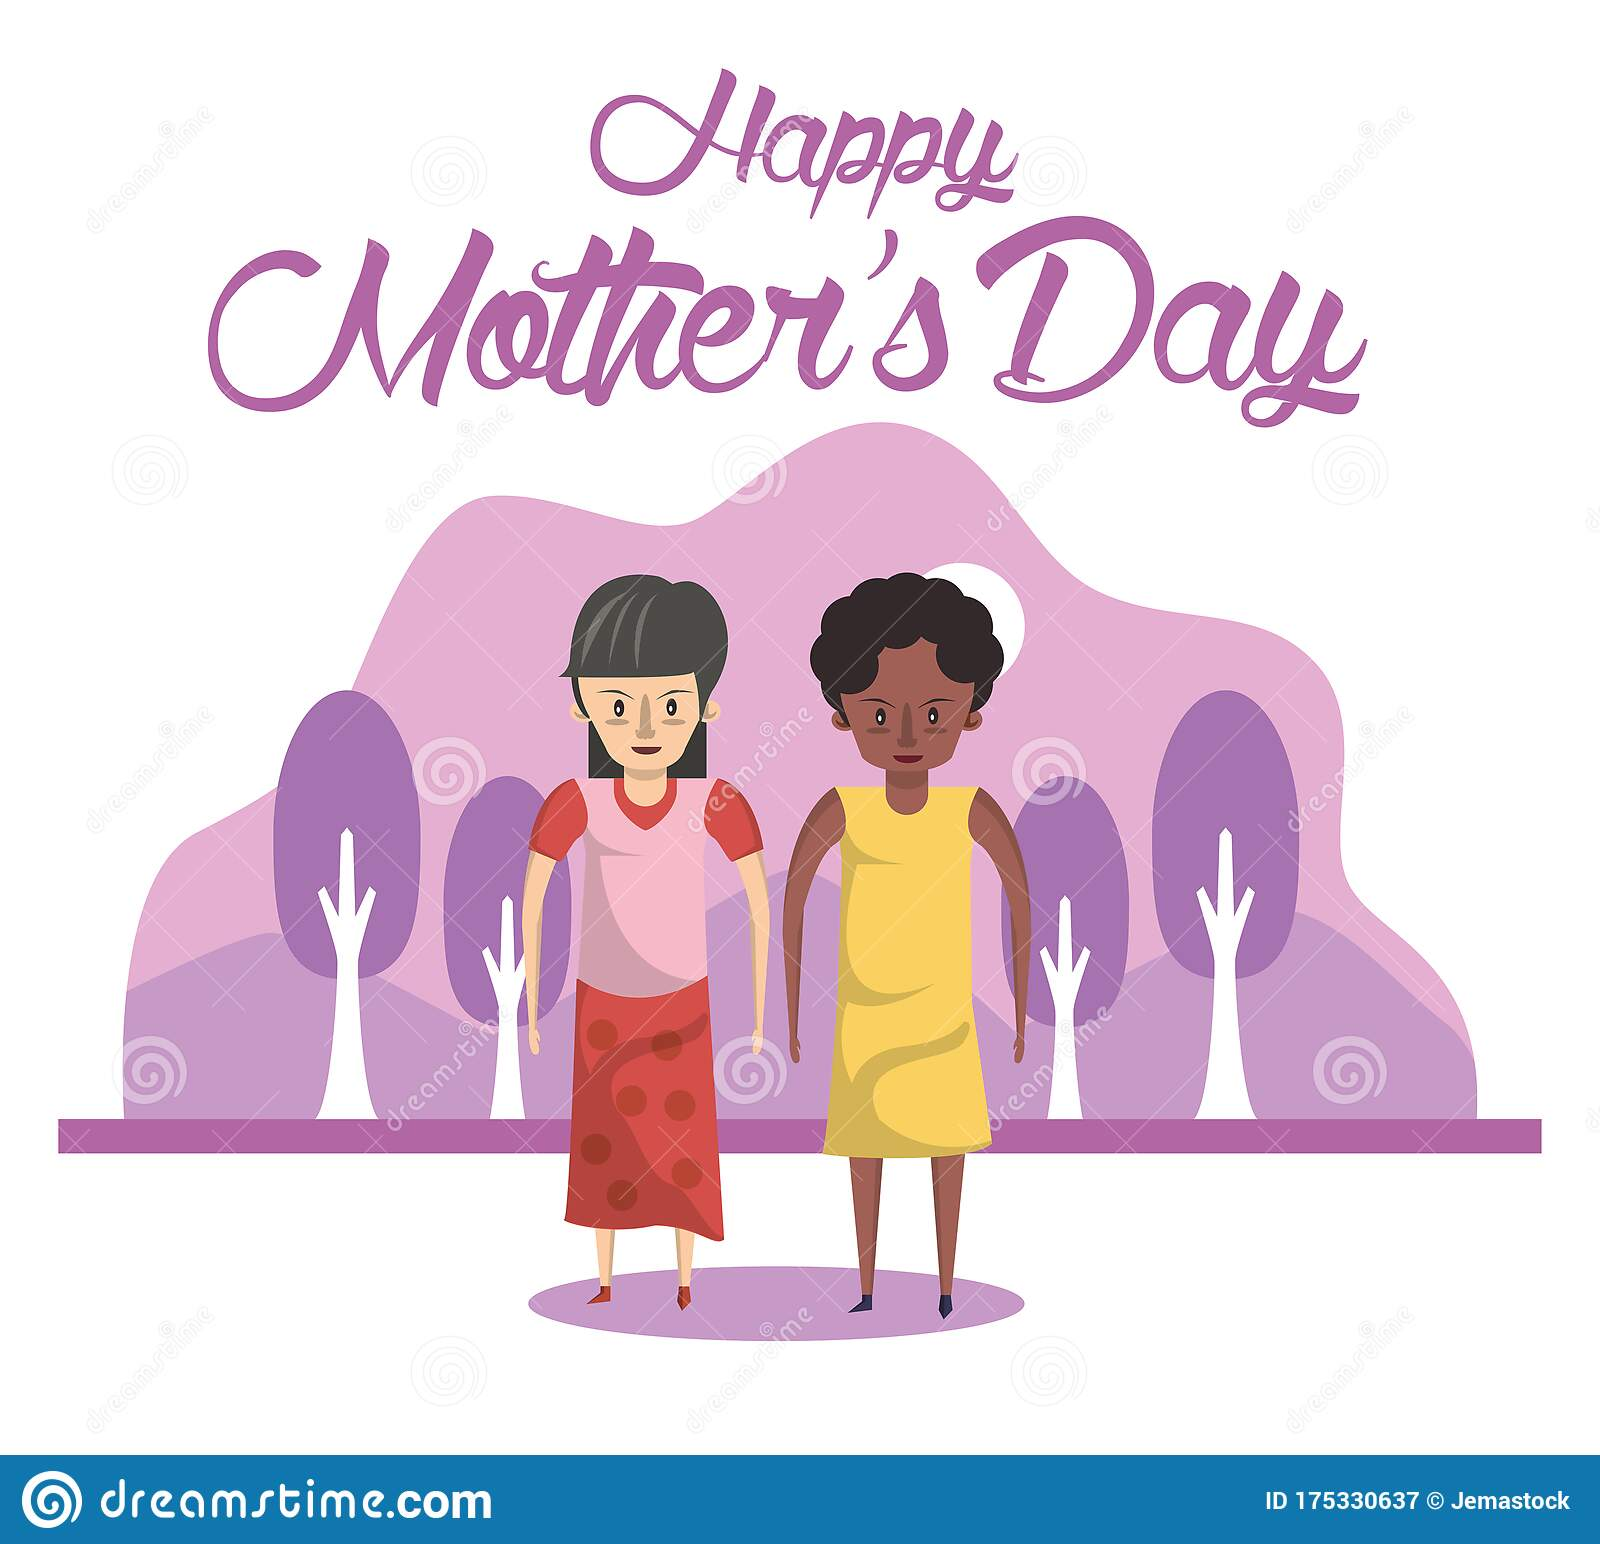 Happy Mothers Day Interracial